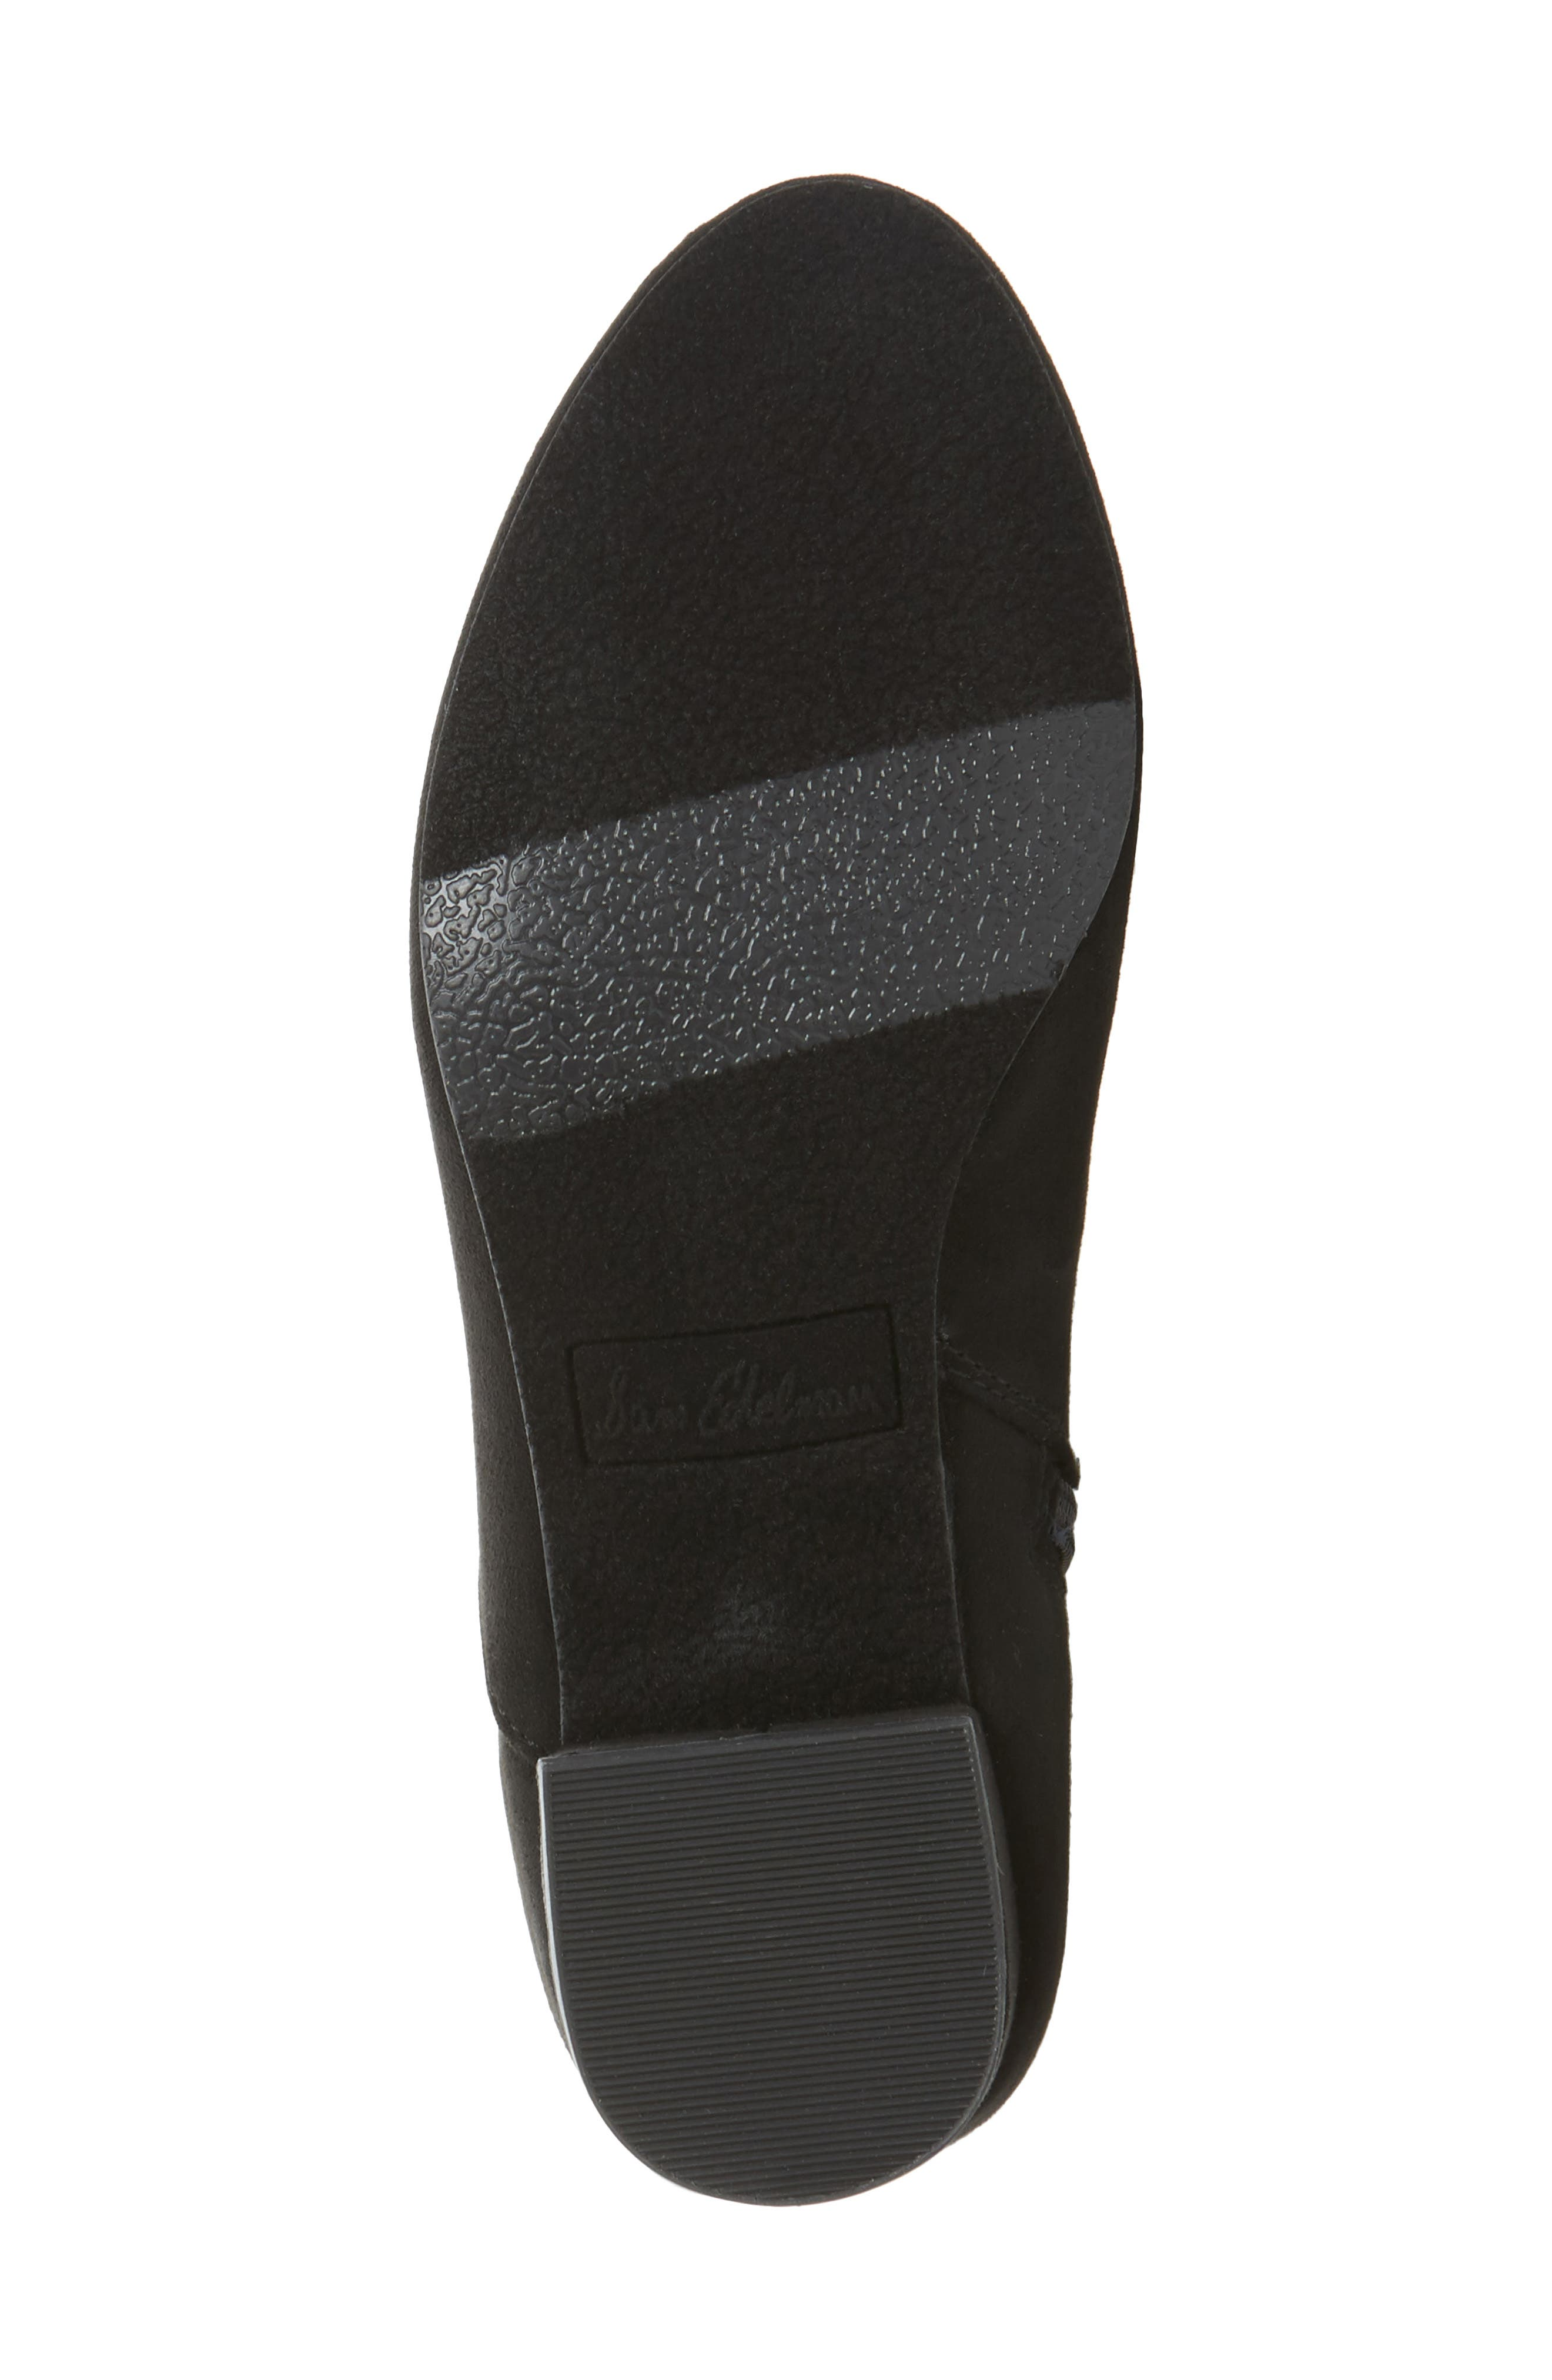 Tate Sydney Tall Boot,                             Alternate thumbnail 6, color,                             001